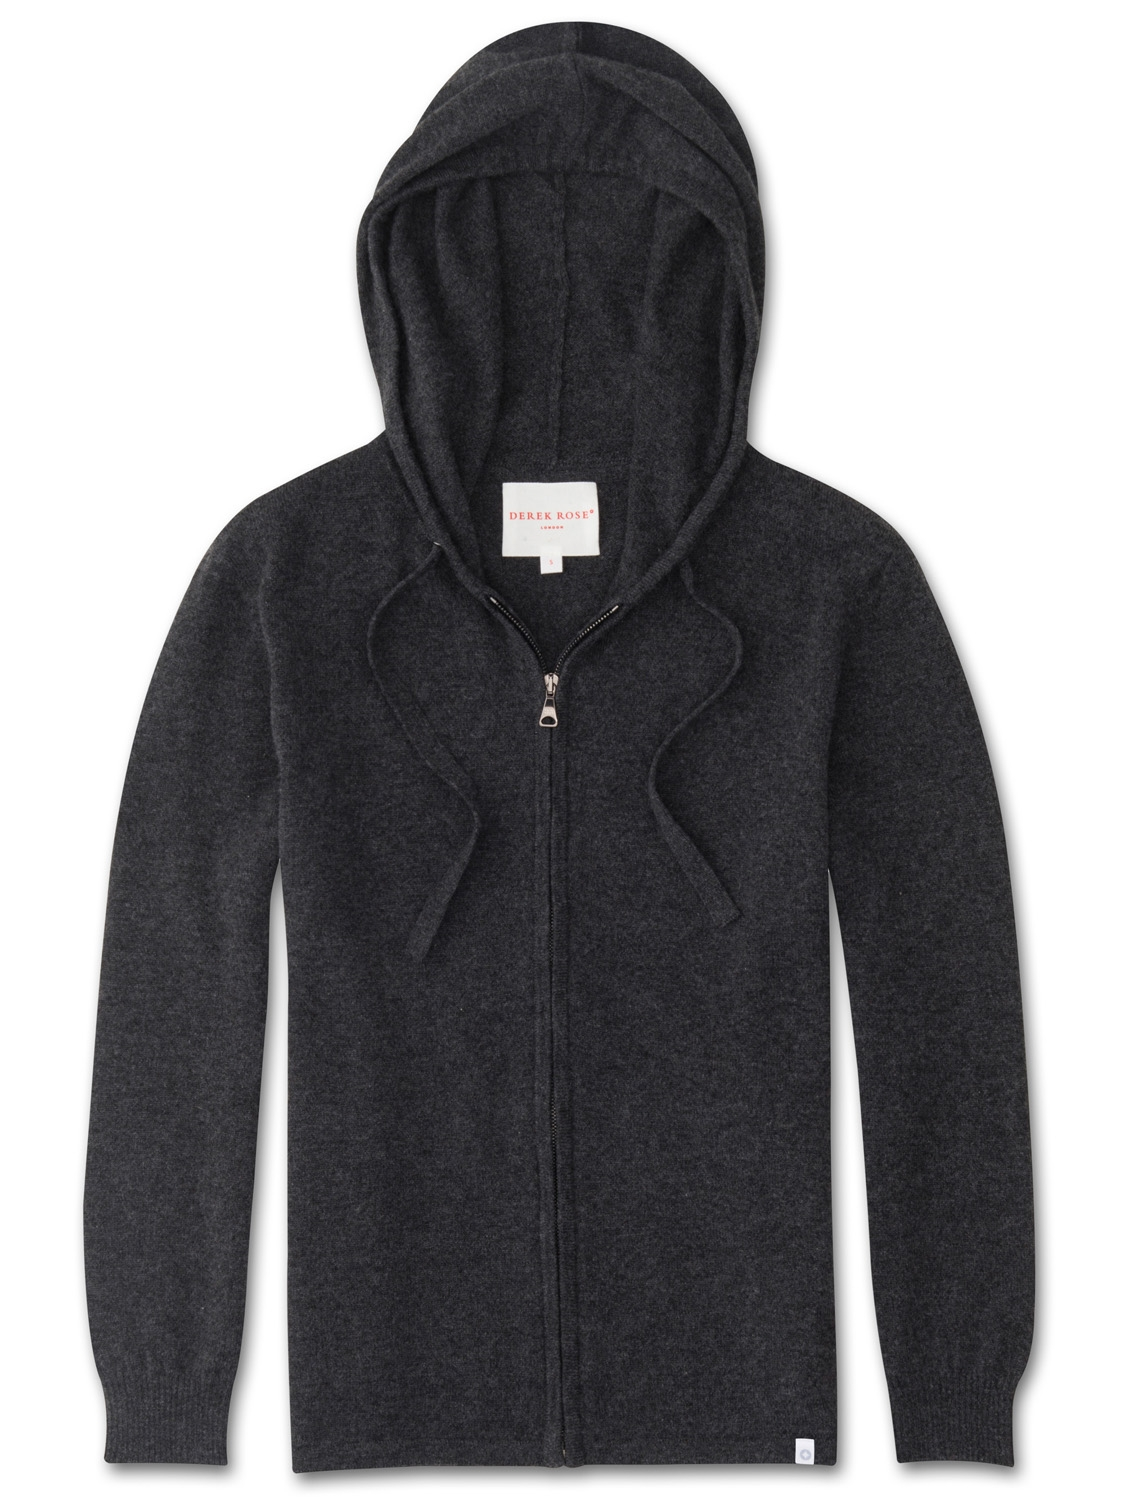 Derek Rose Women's Cashmere Hoodie Finley Pure Cashmere Charcoal